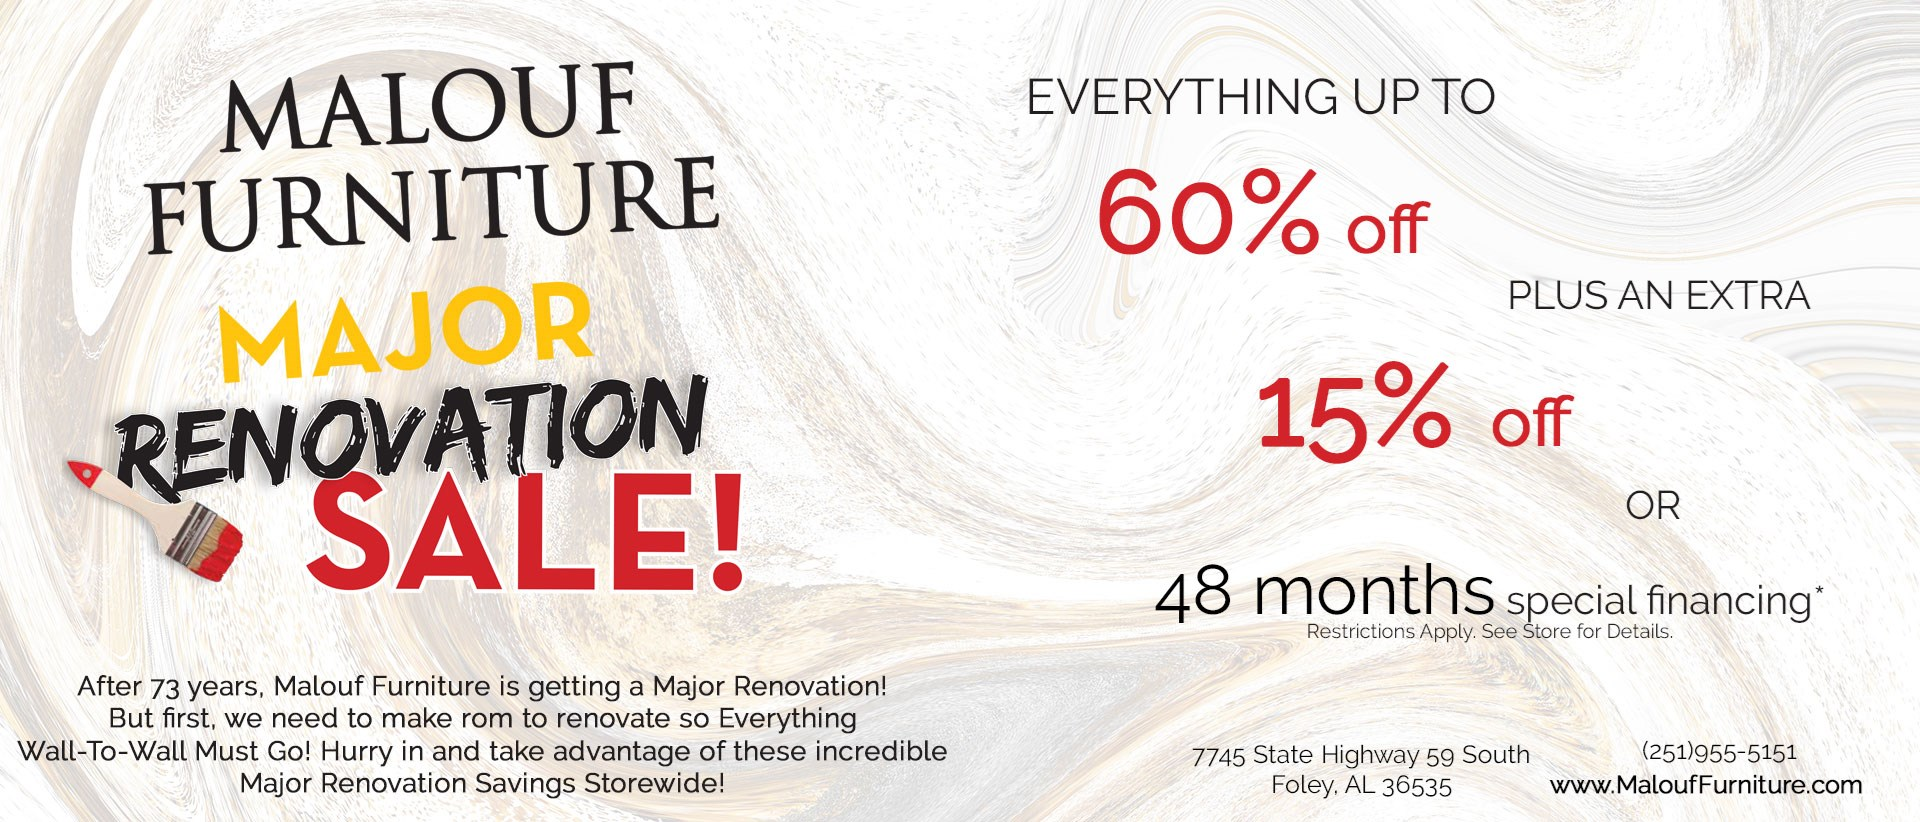 Major renovation sale! Everything up to 60% off plus and extra 15% off, or 48 months special financing. Restrictions apply. See store for details.